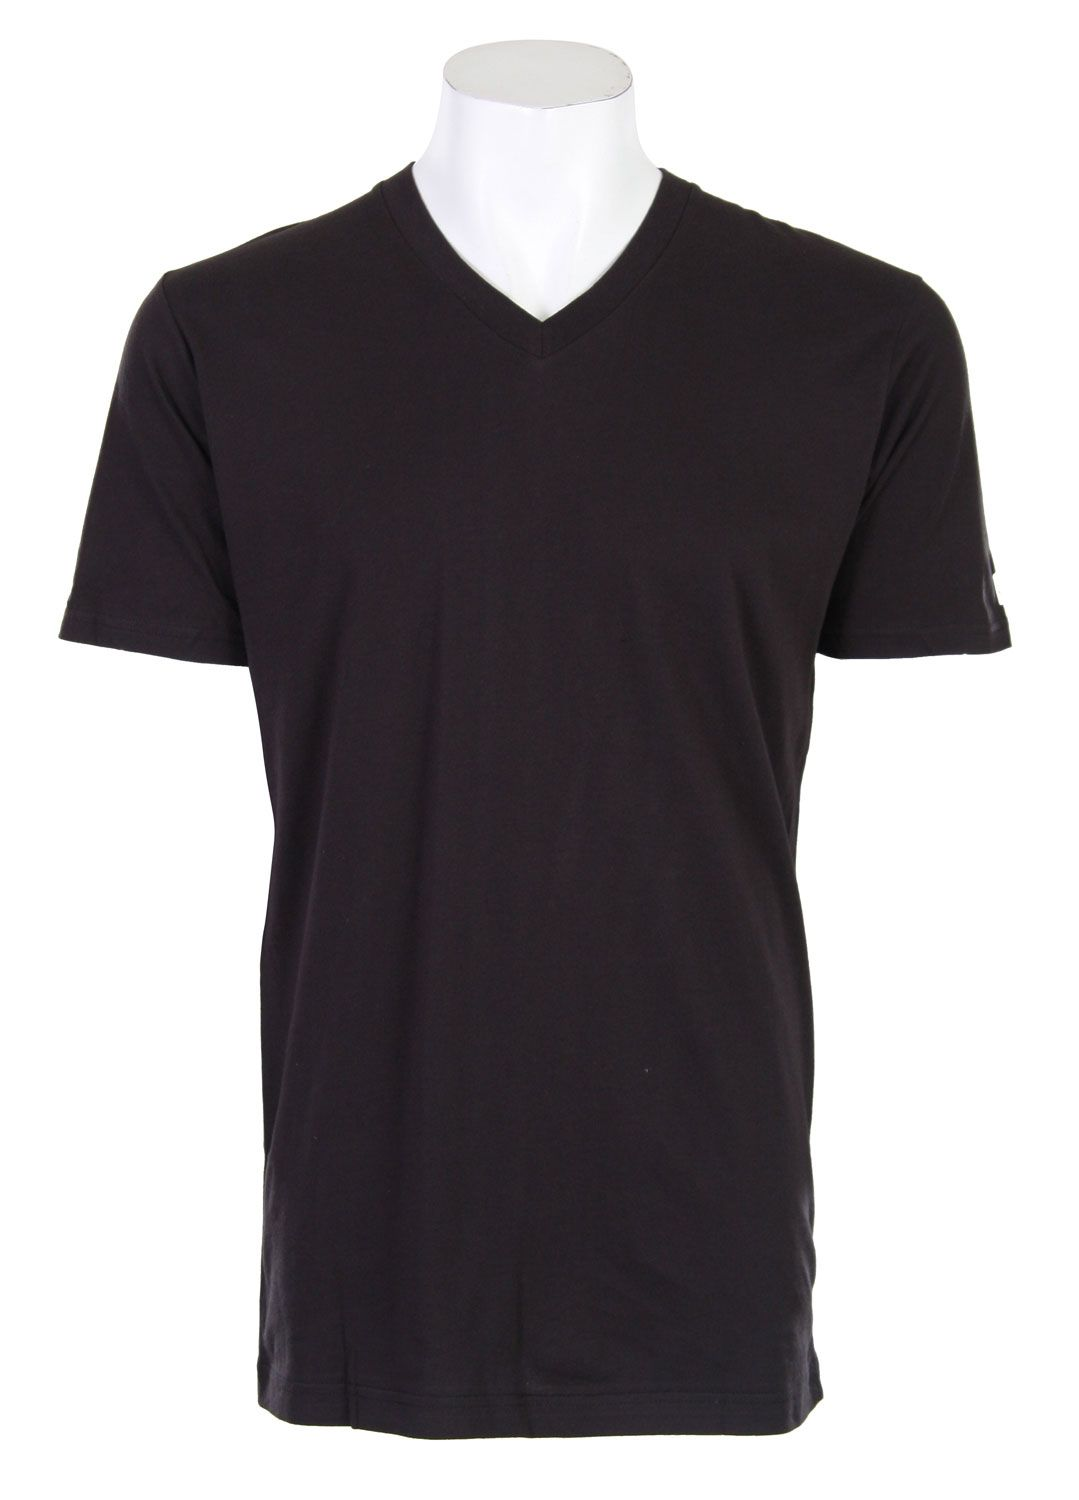 Black t shirt v shape - Black T Shirt V Shape 14